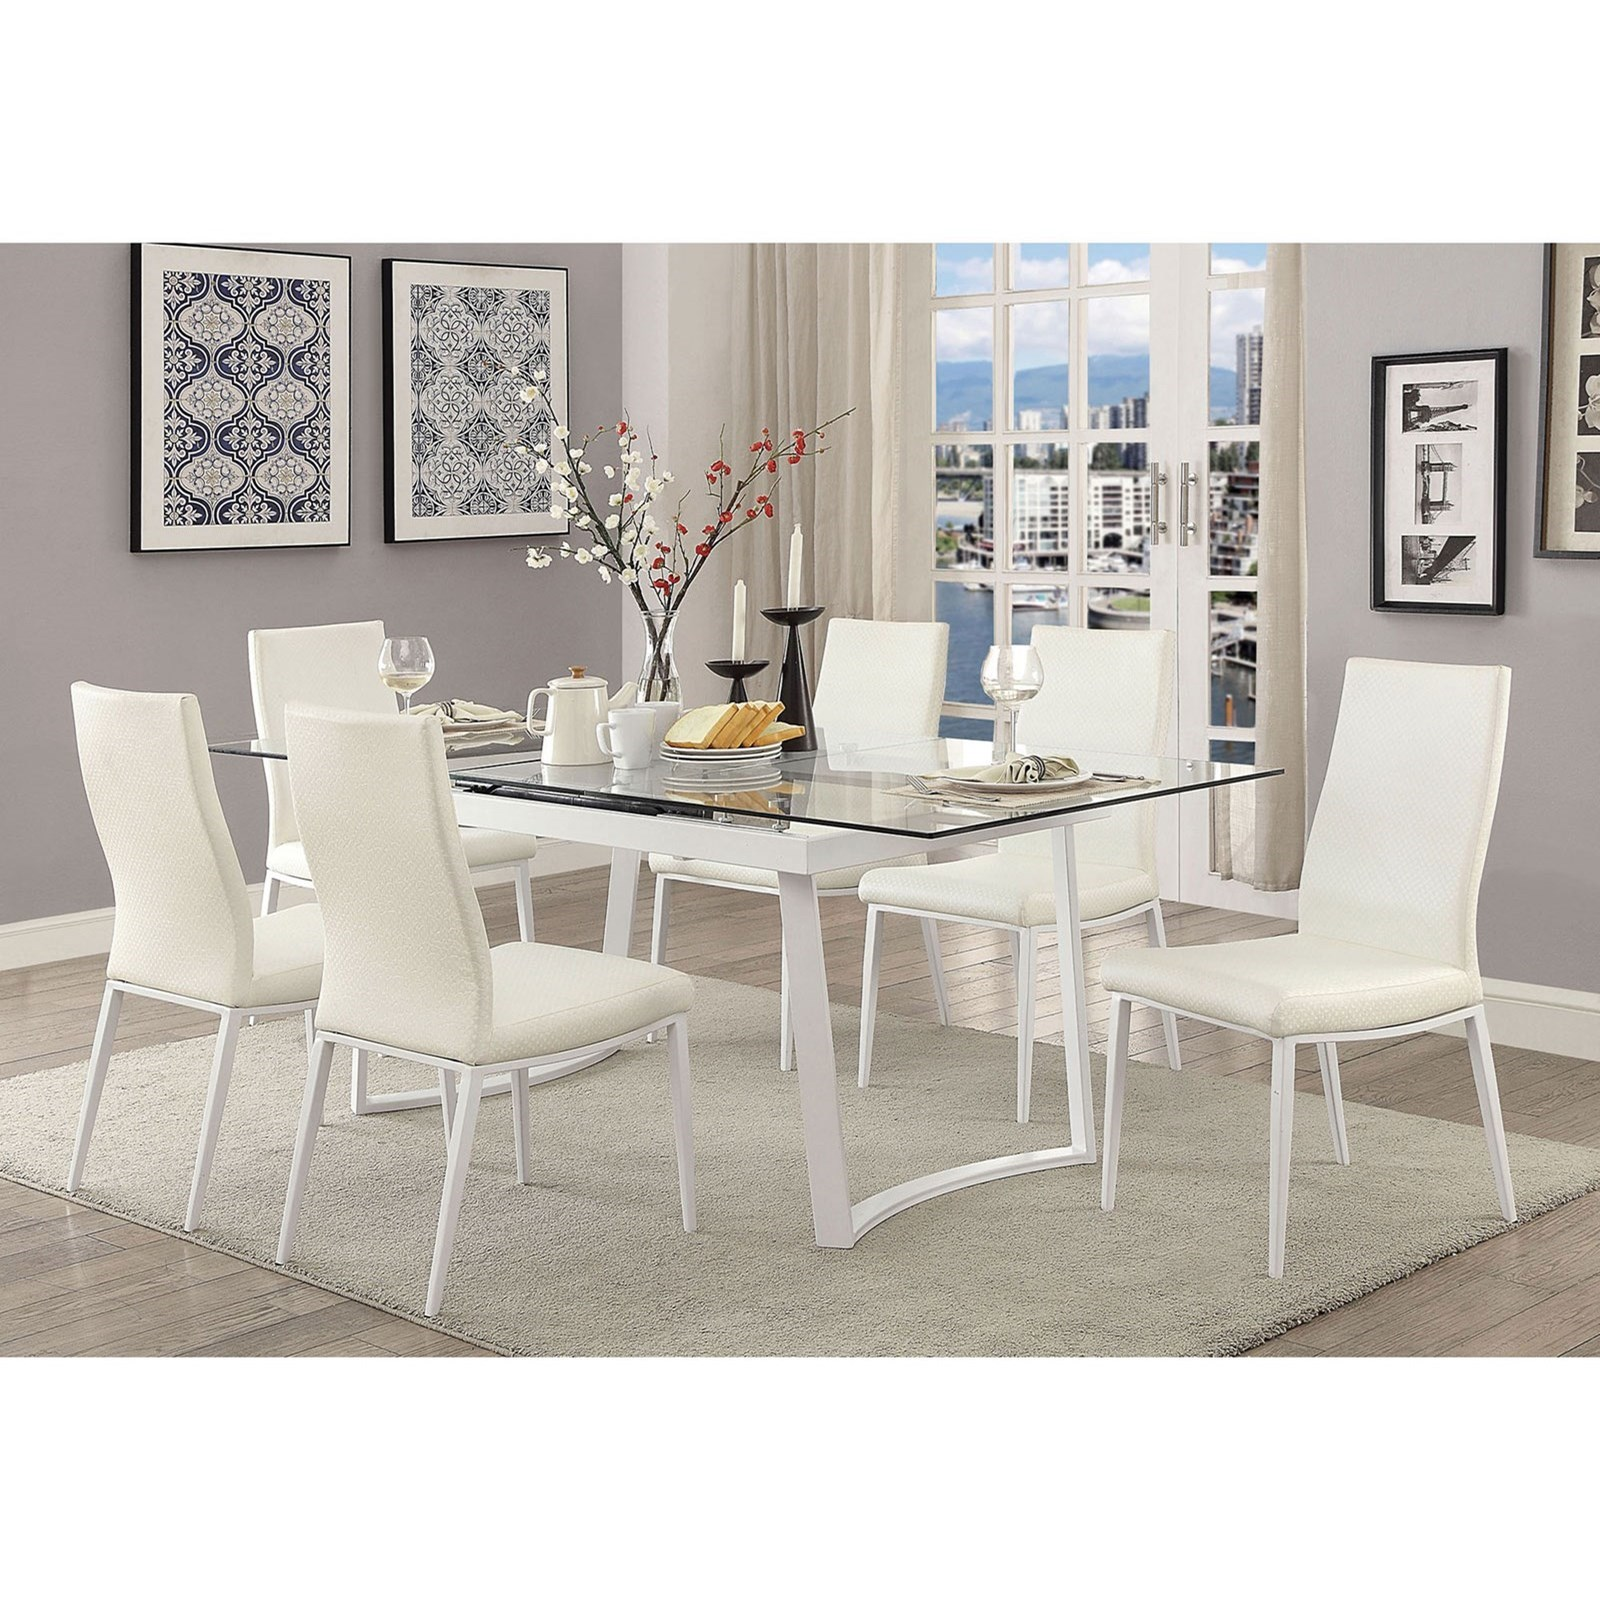 Modern Dining Set Miriam Contemporary Table 6 Side Chairs By Furniture Of America At Rooms For Less